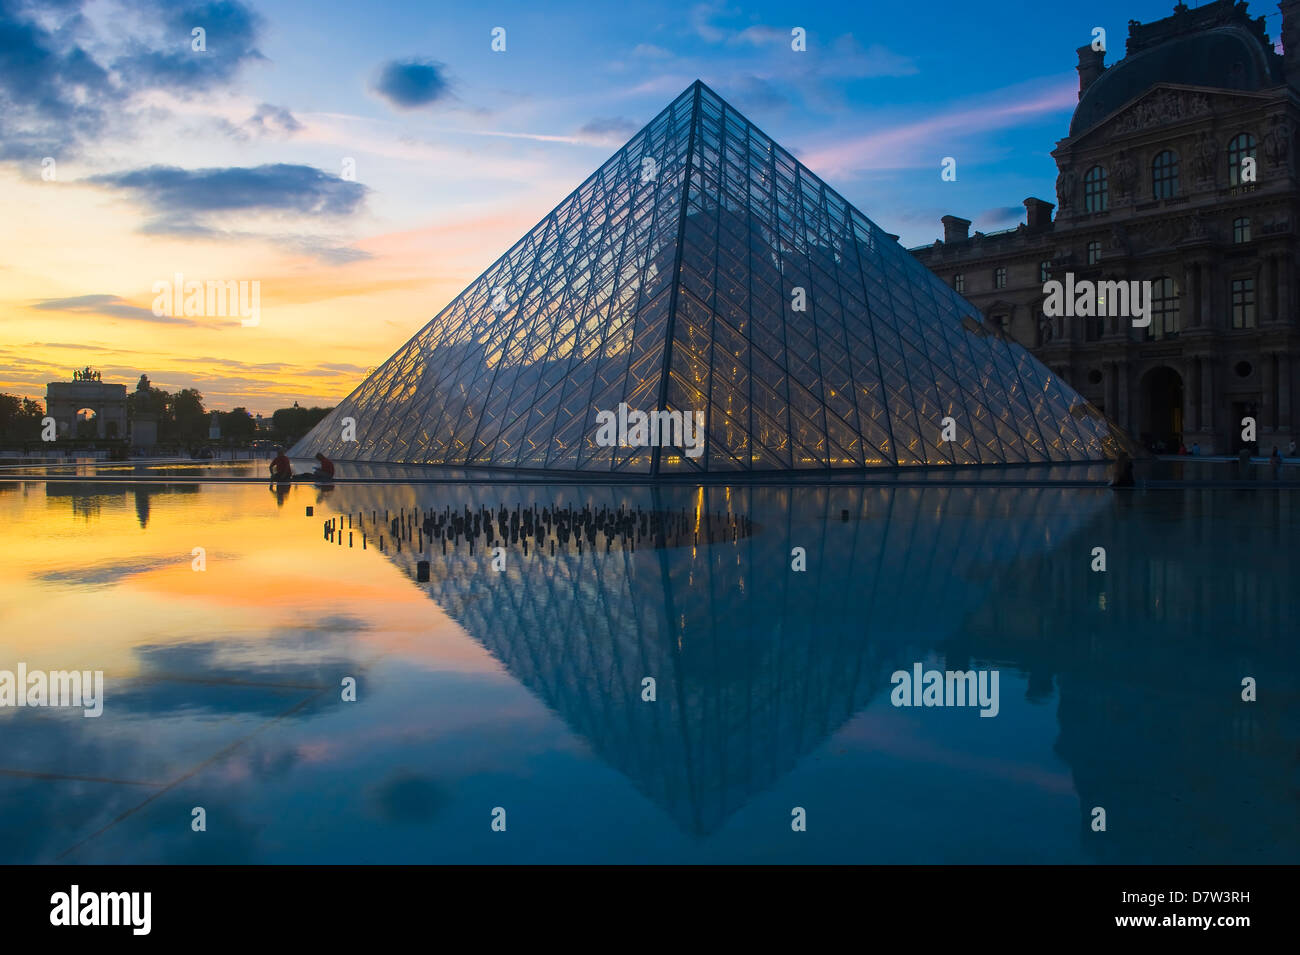 Louvre Pyramide at sunset, Paris, France - Stock Image